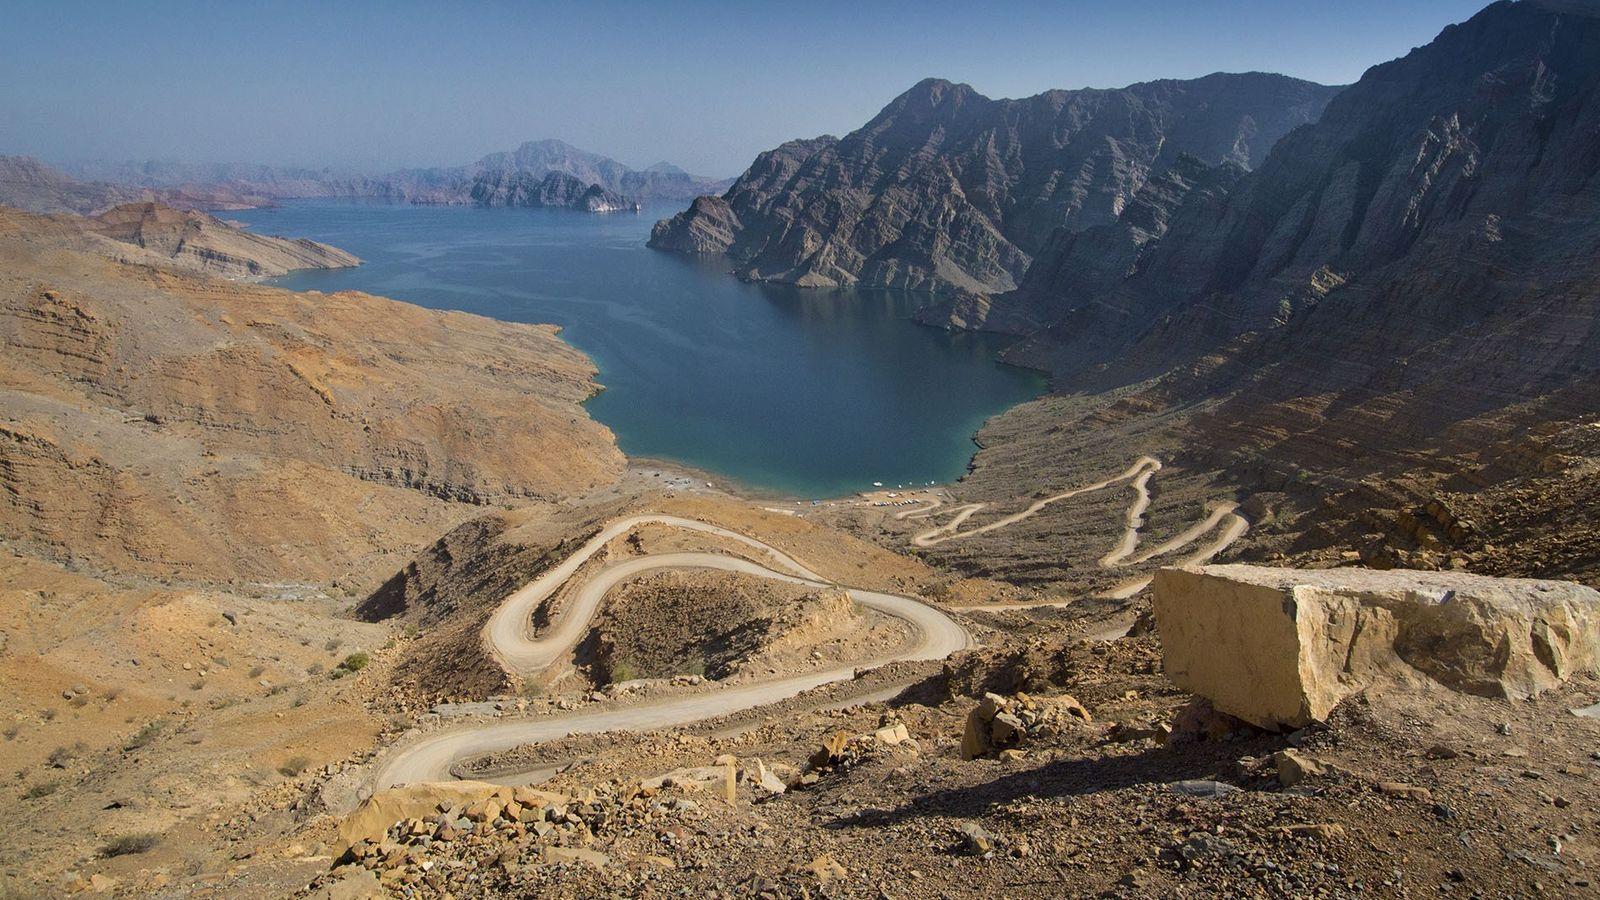 The Musandam Peninsula is jagged with khors, fjord-like inlets where dolphins play.